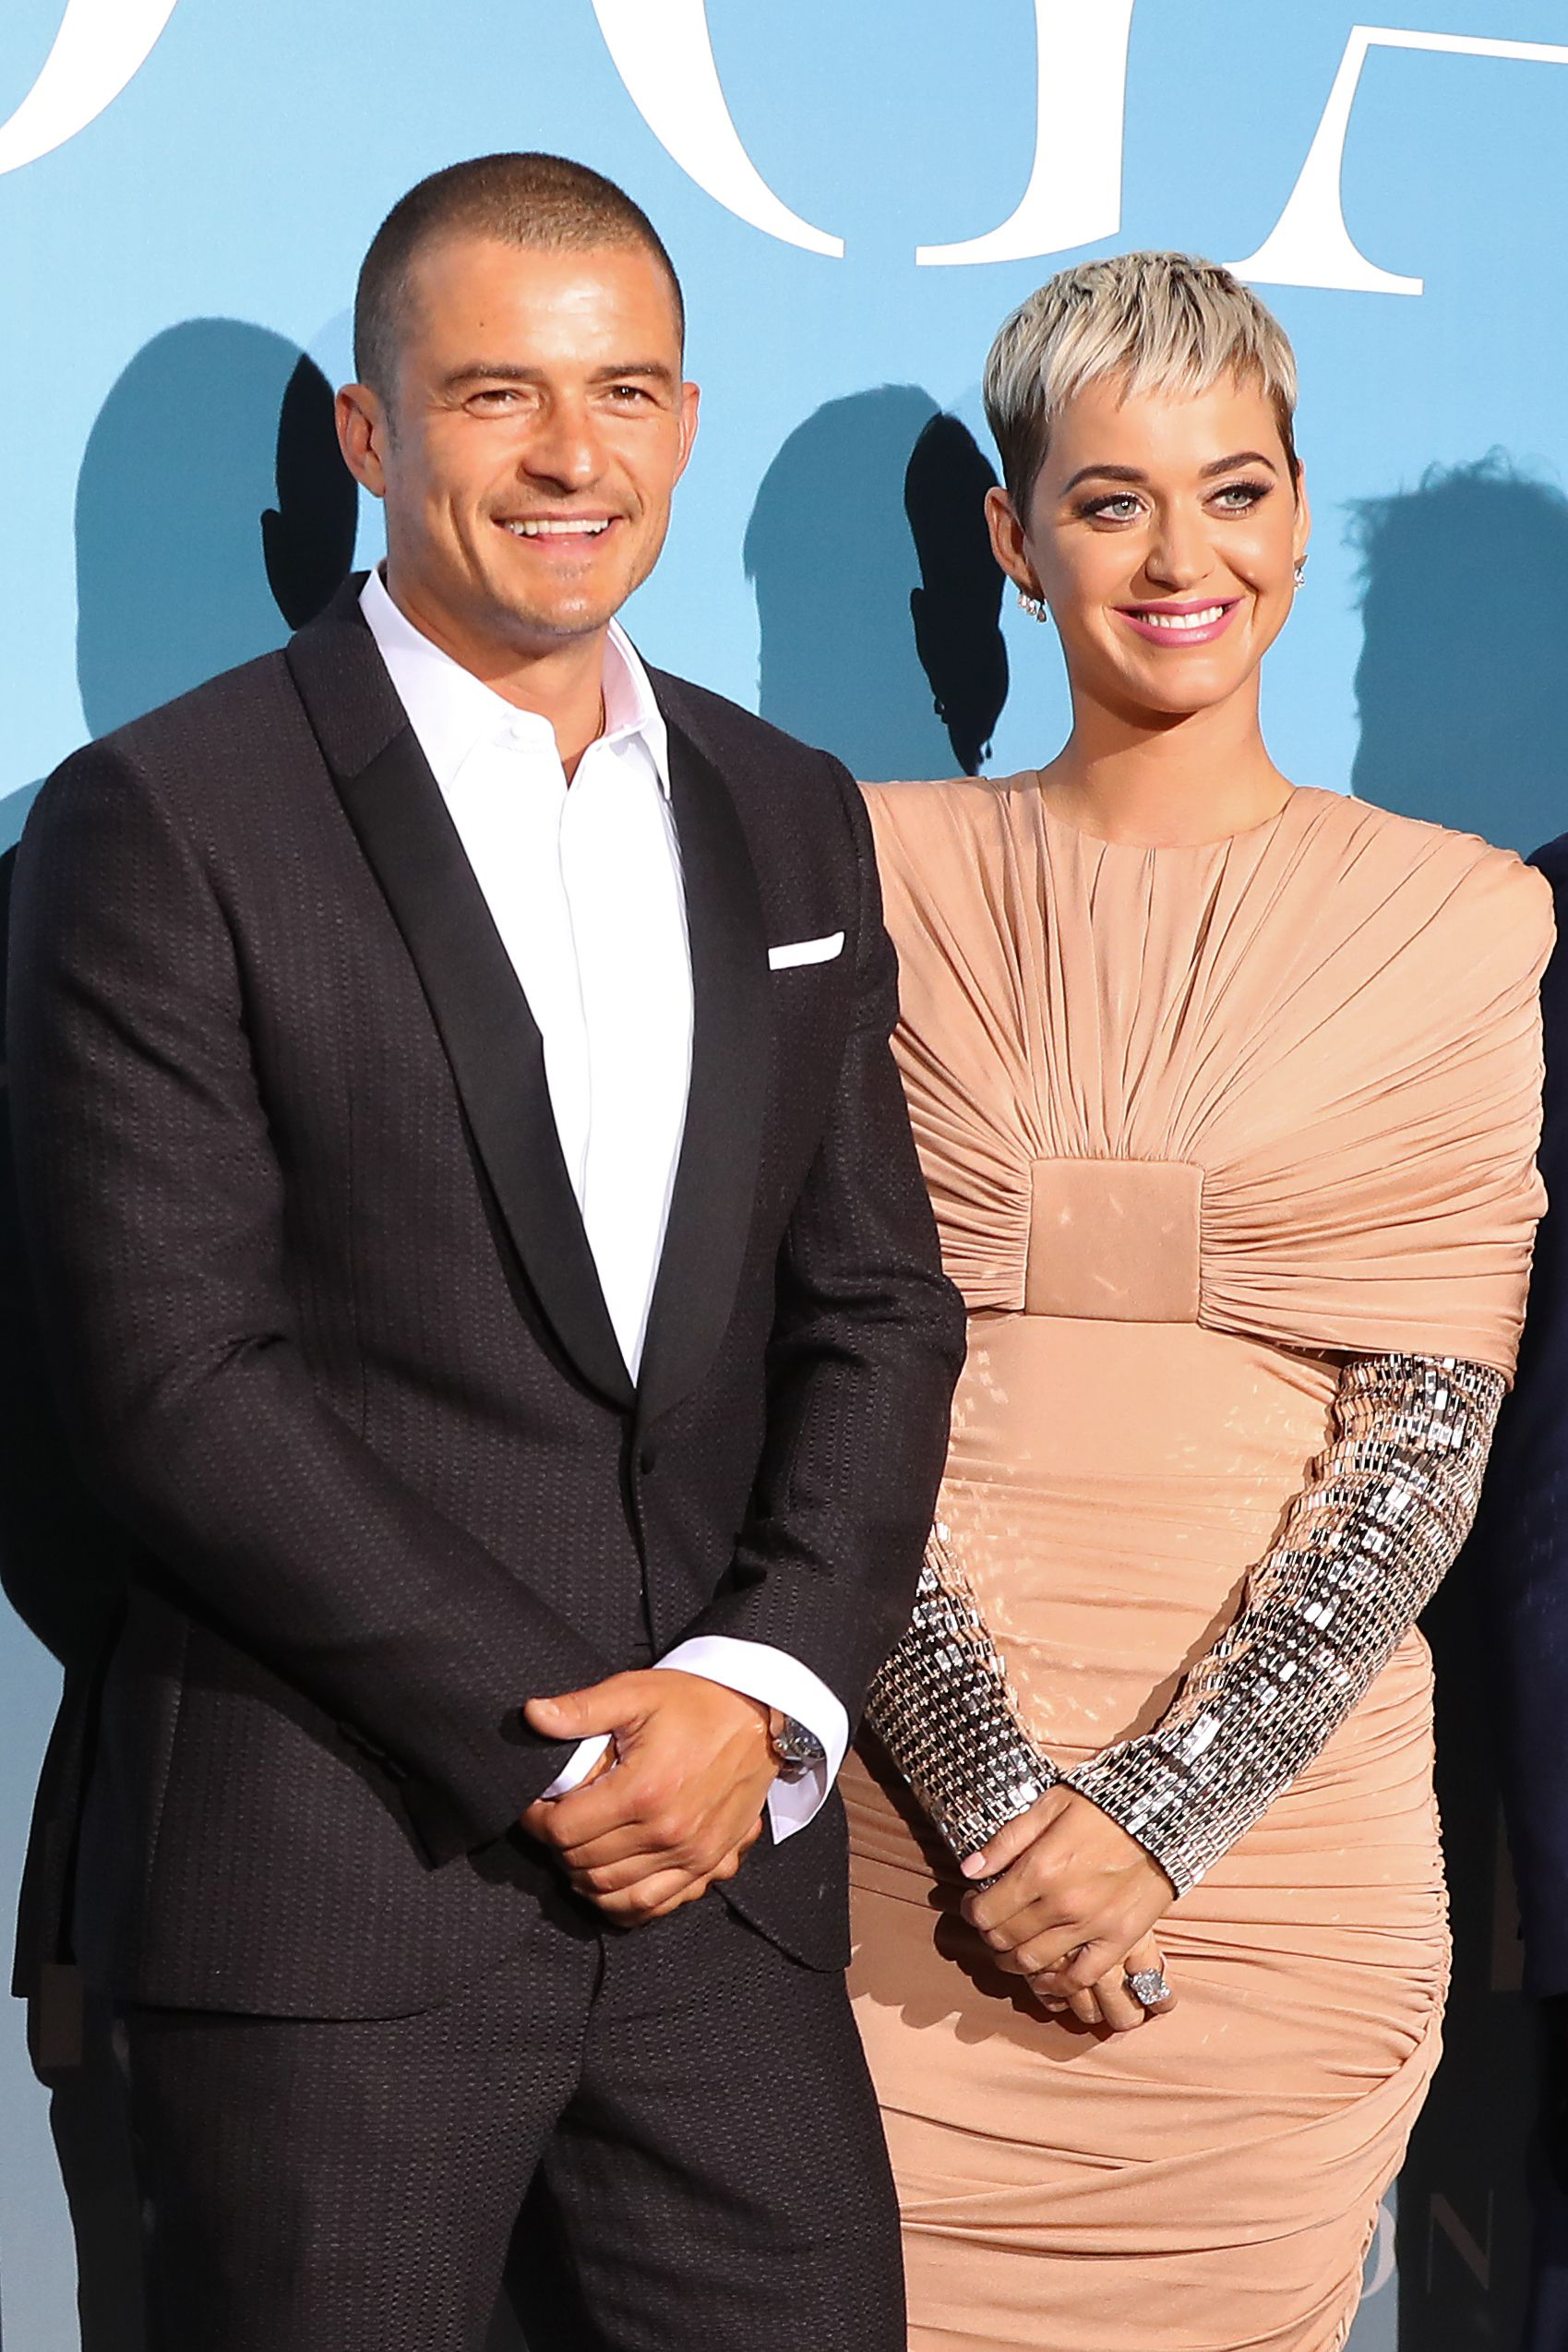 Katy Perry and Orlando Bloom will be husband and wife before years end.